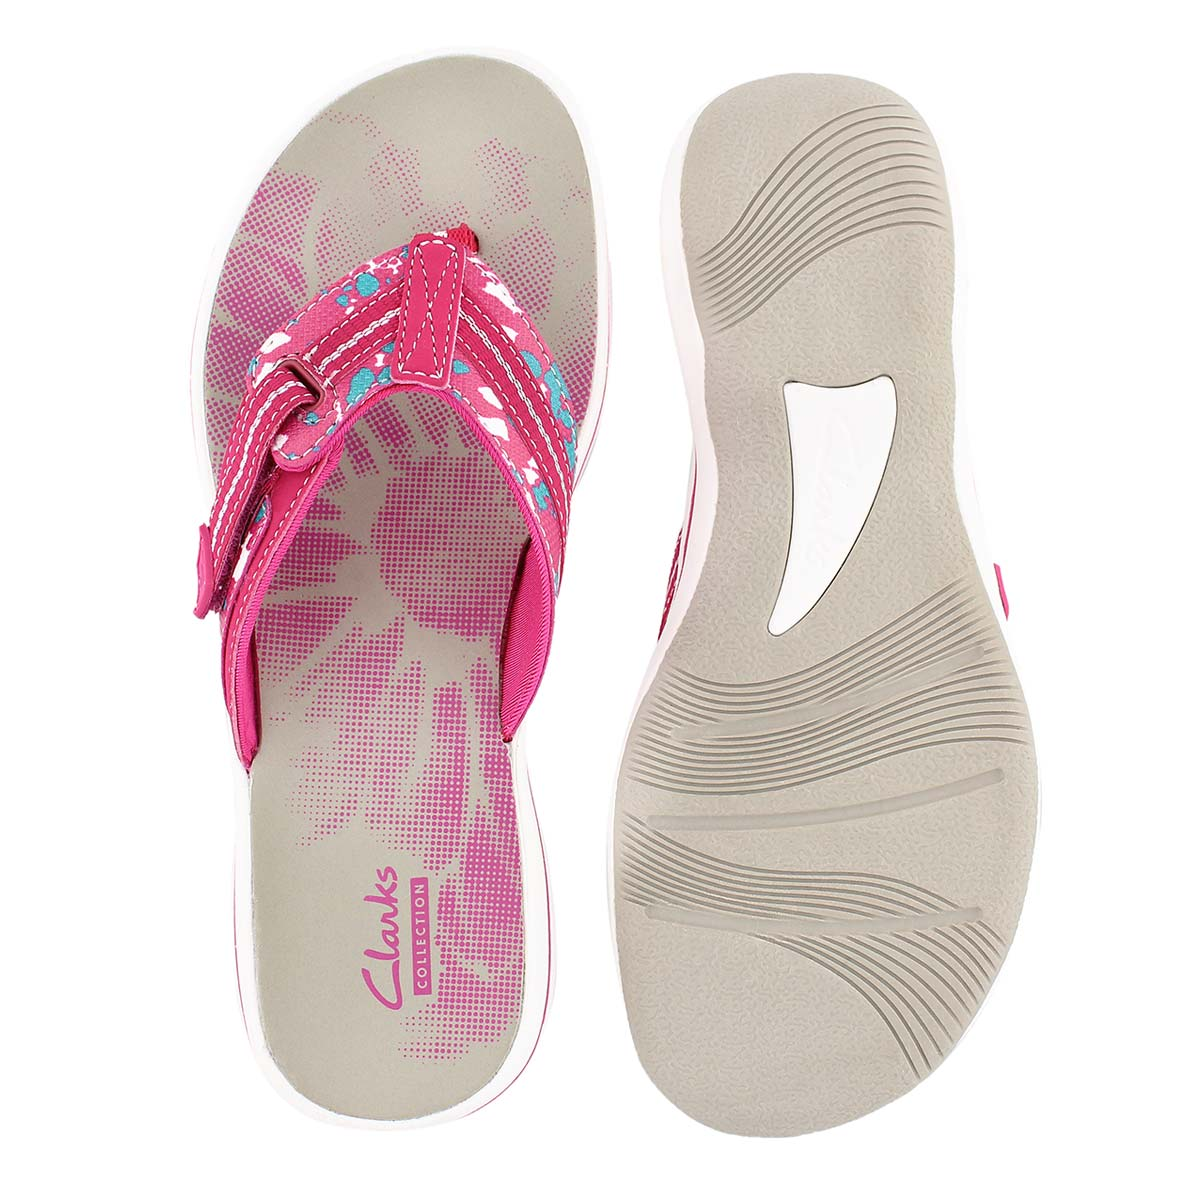 Lds Brinkley Jazz pink camo thong sandal